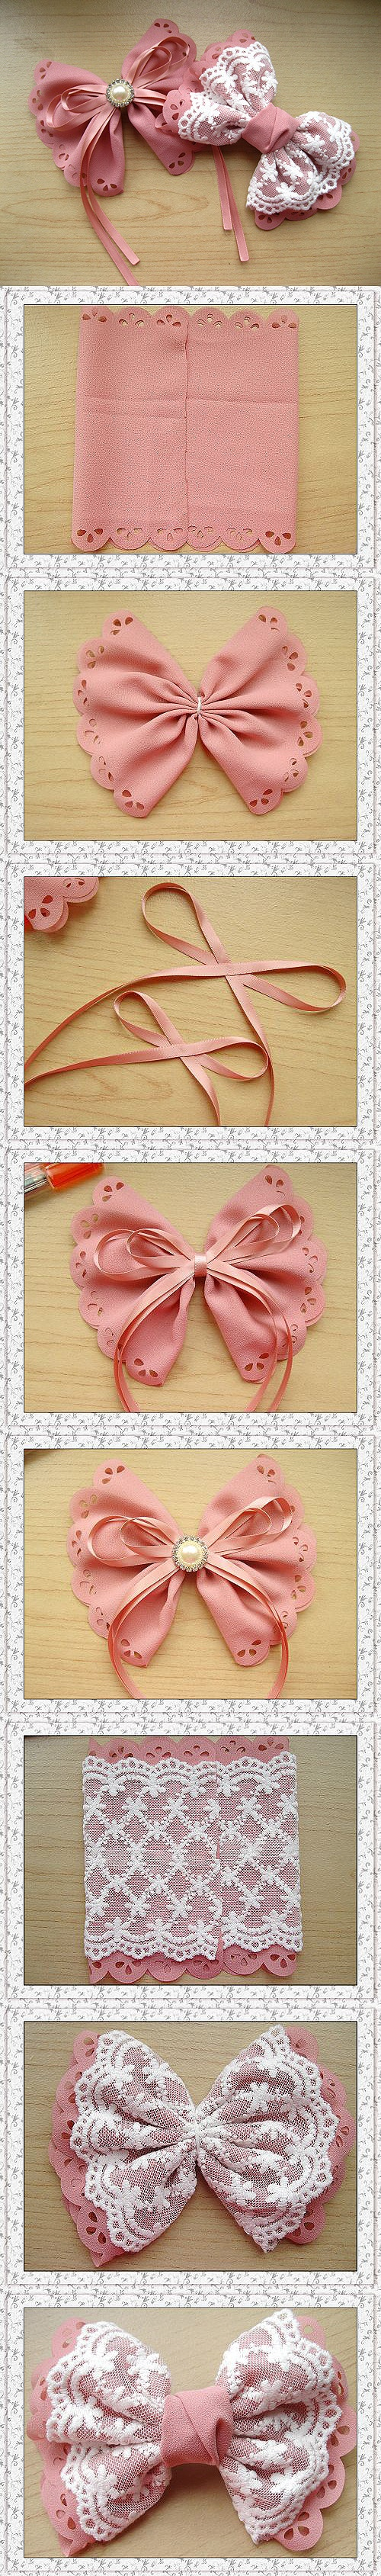 how to make lolita lace and ribbon bow